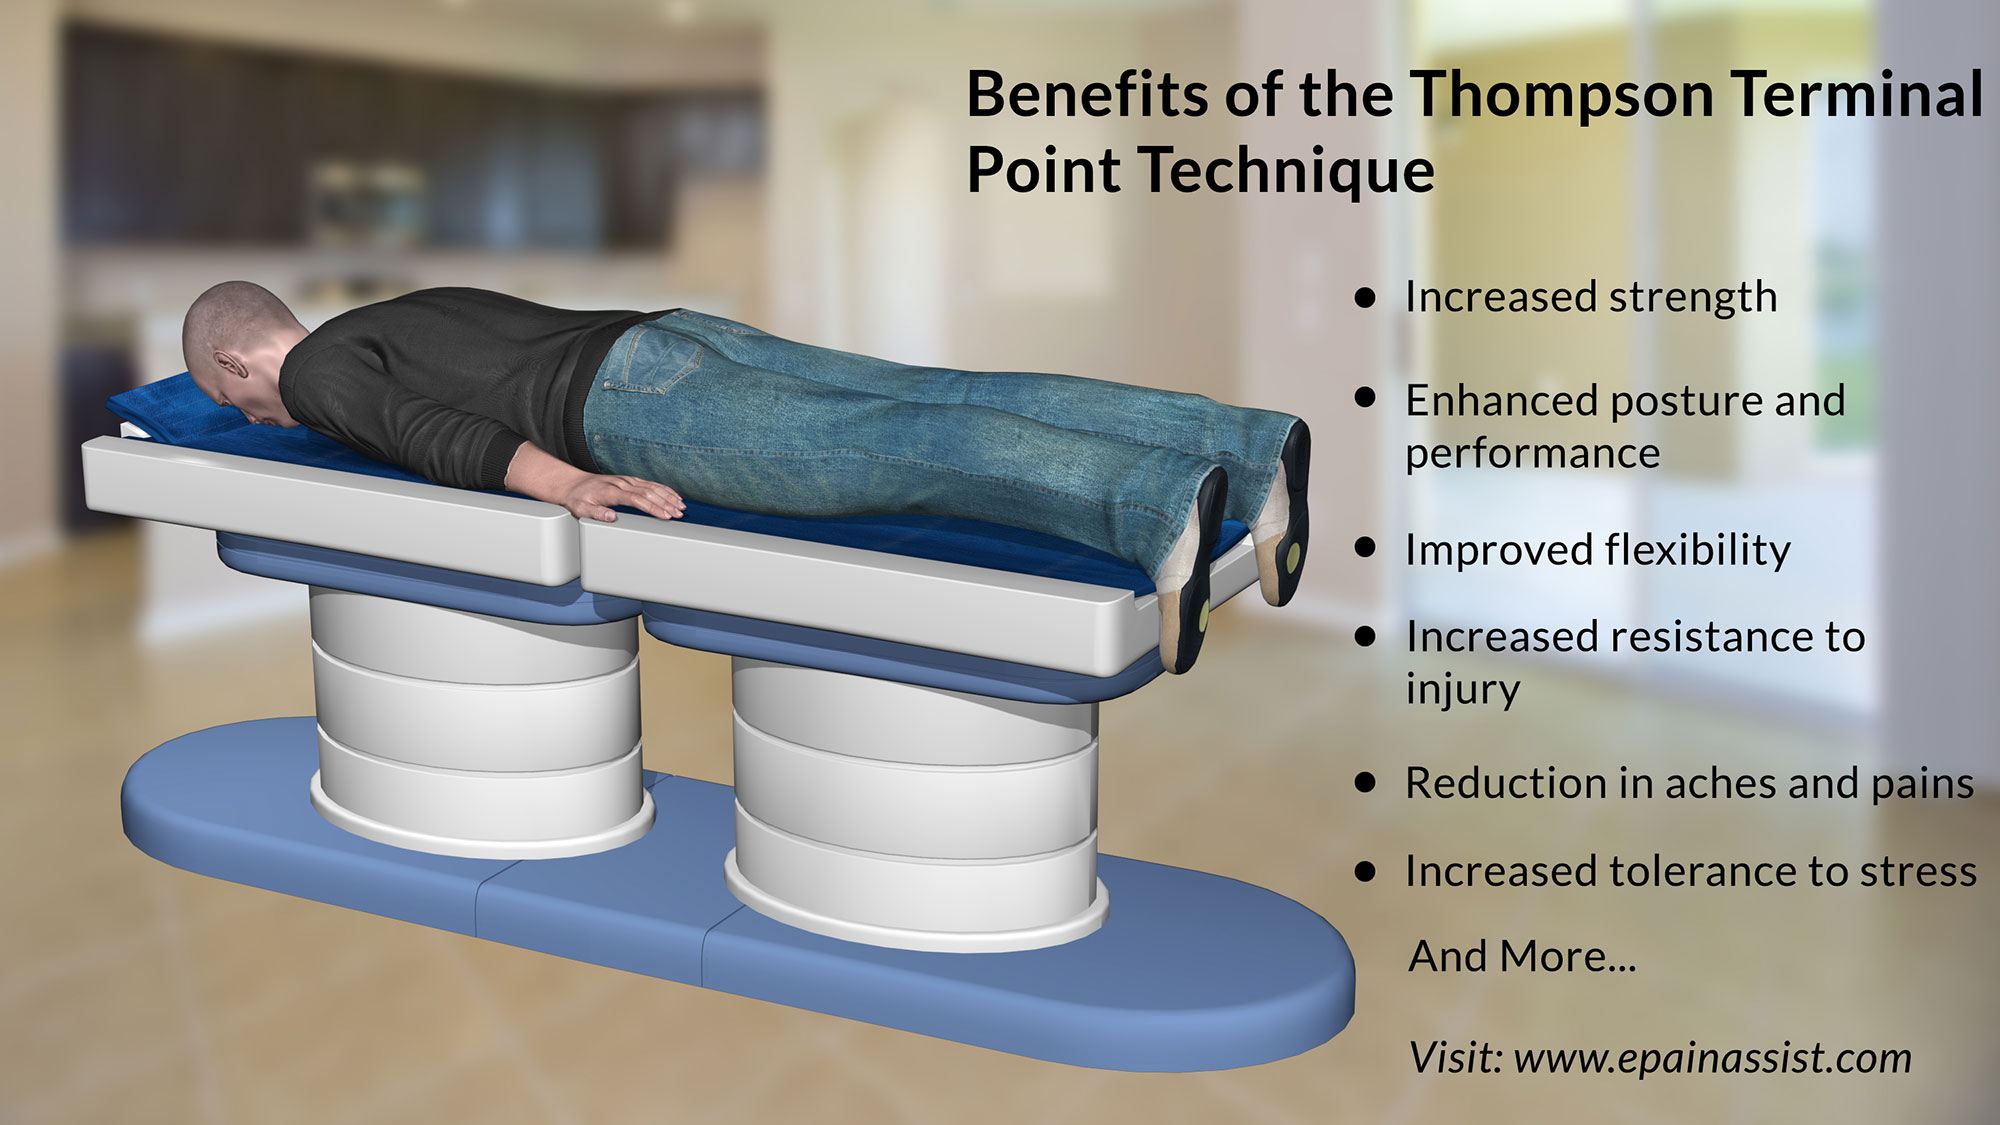 Thompson Terminal Point Technique Or Thompson Drop Table